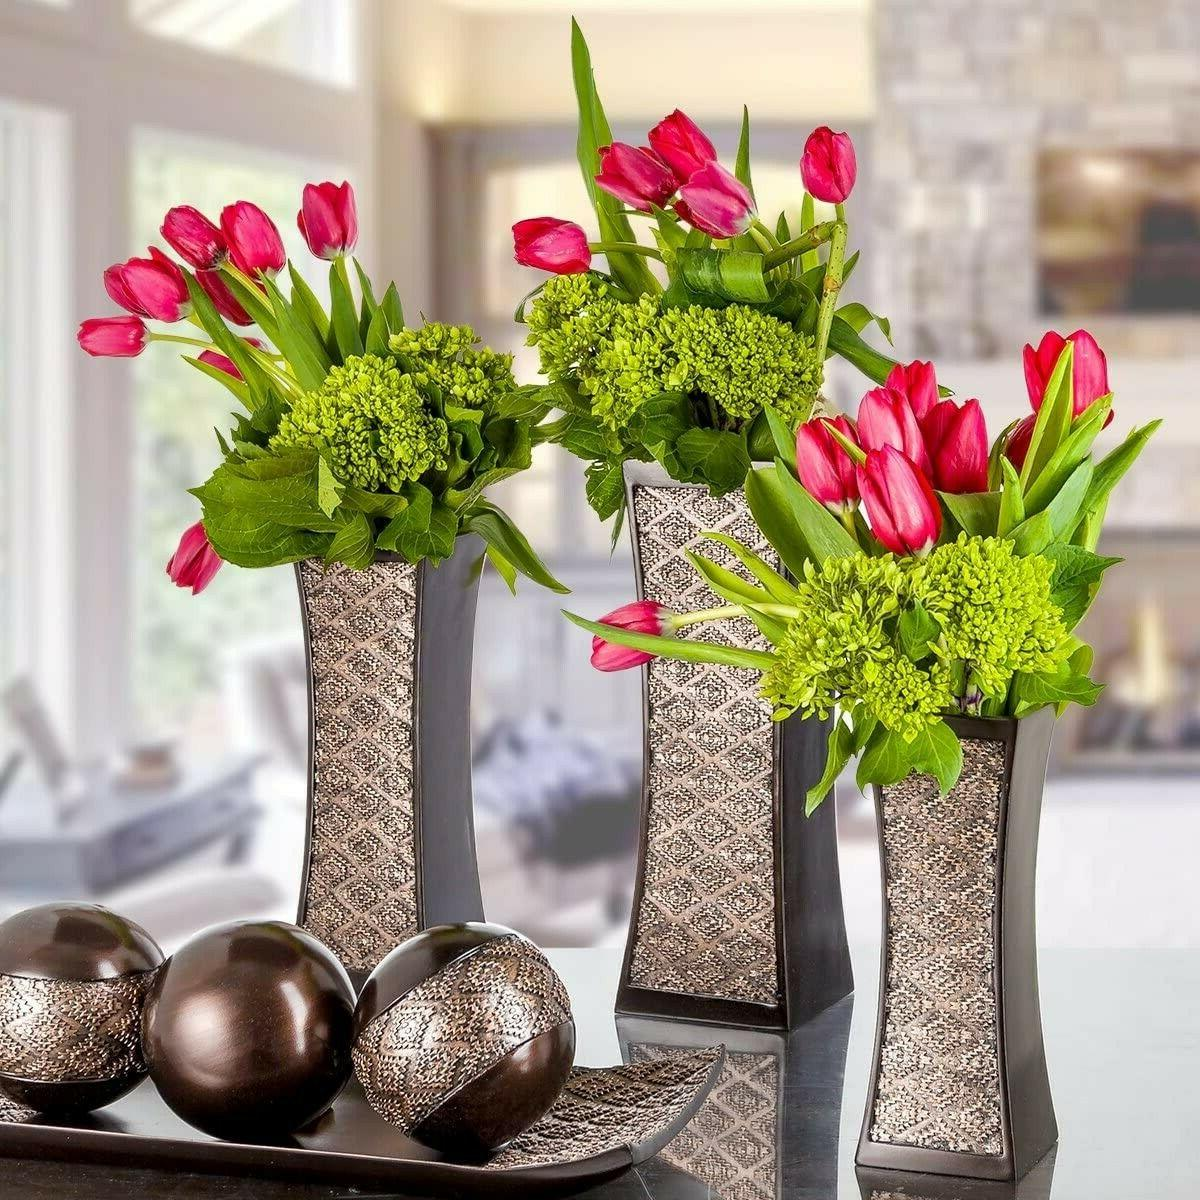 Durable Flower Vase For Kitchen Dining Table